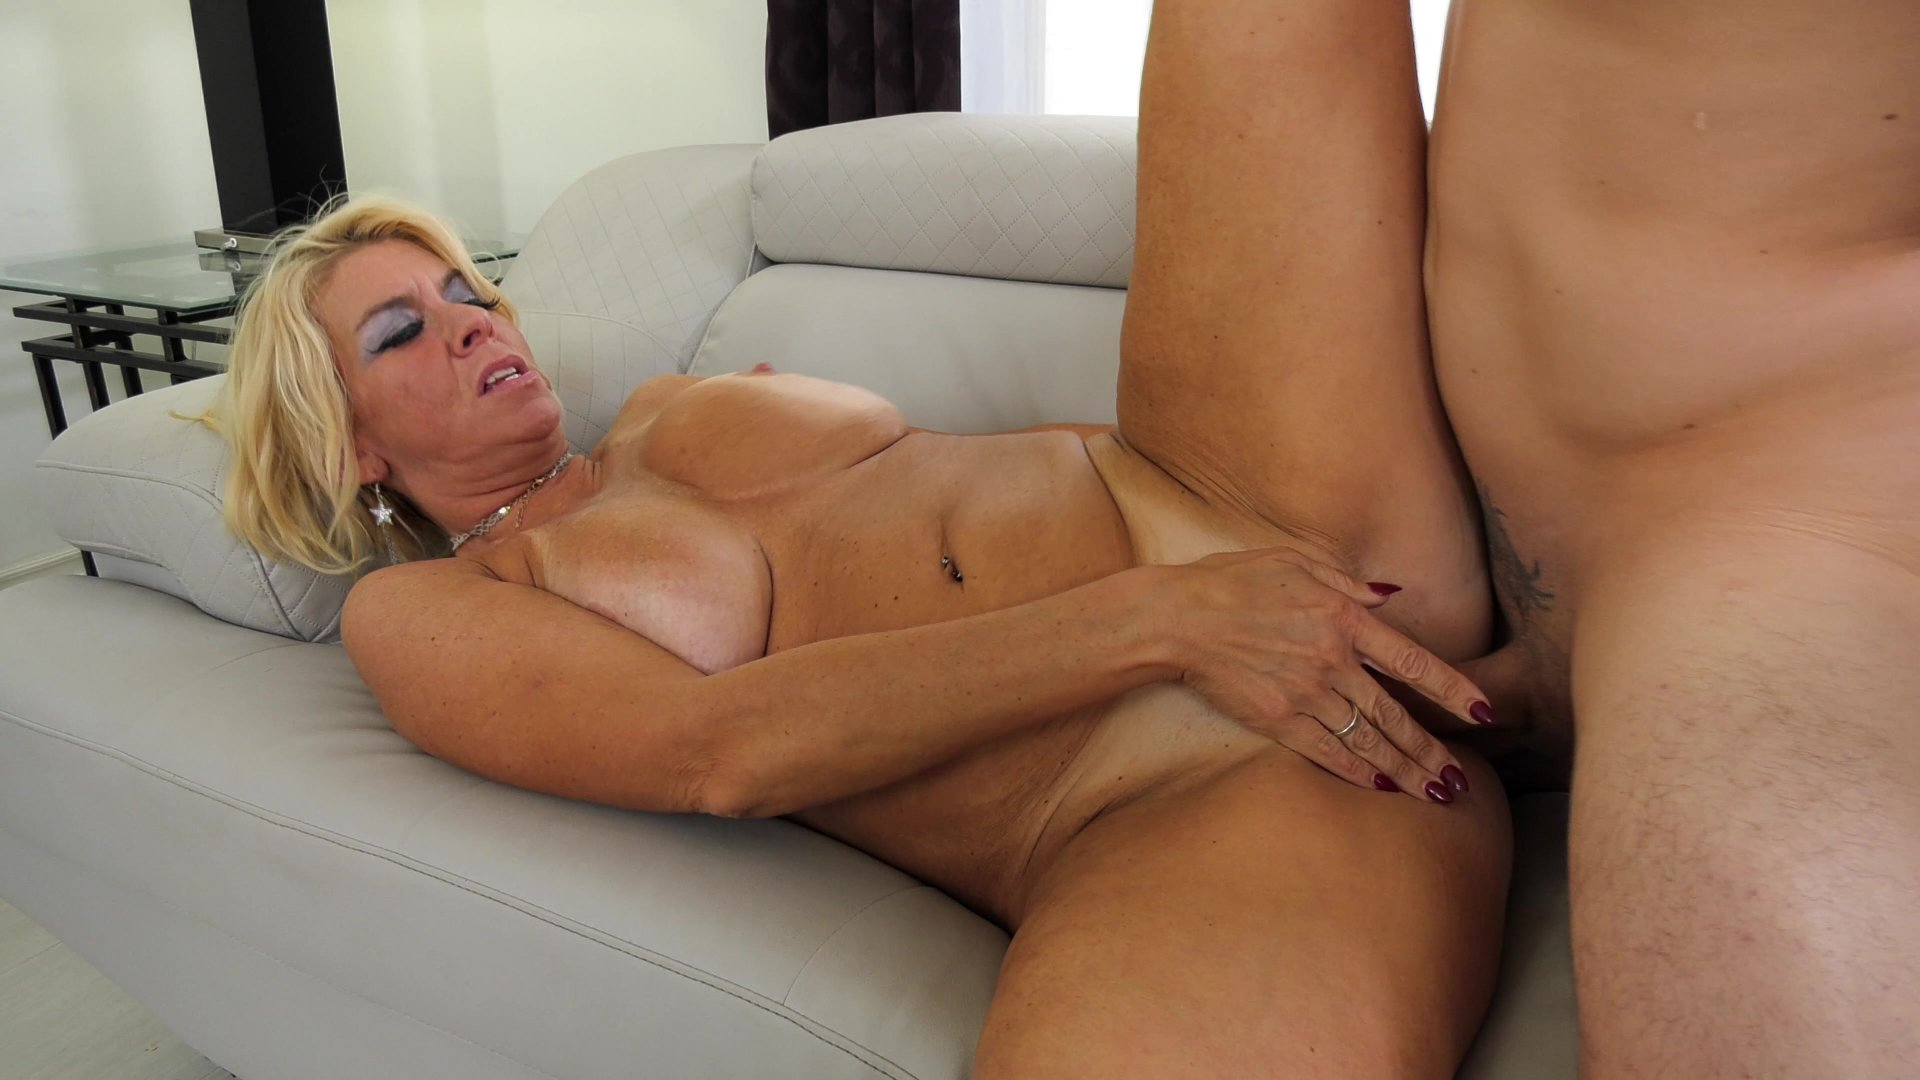 Mature women sex film #10